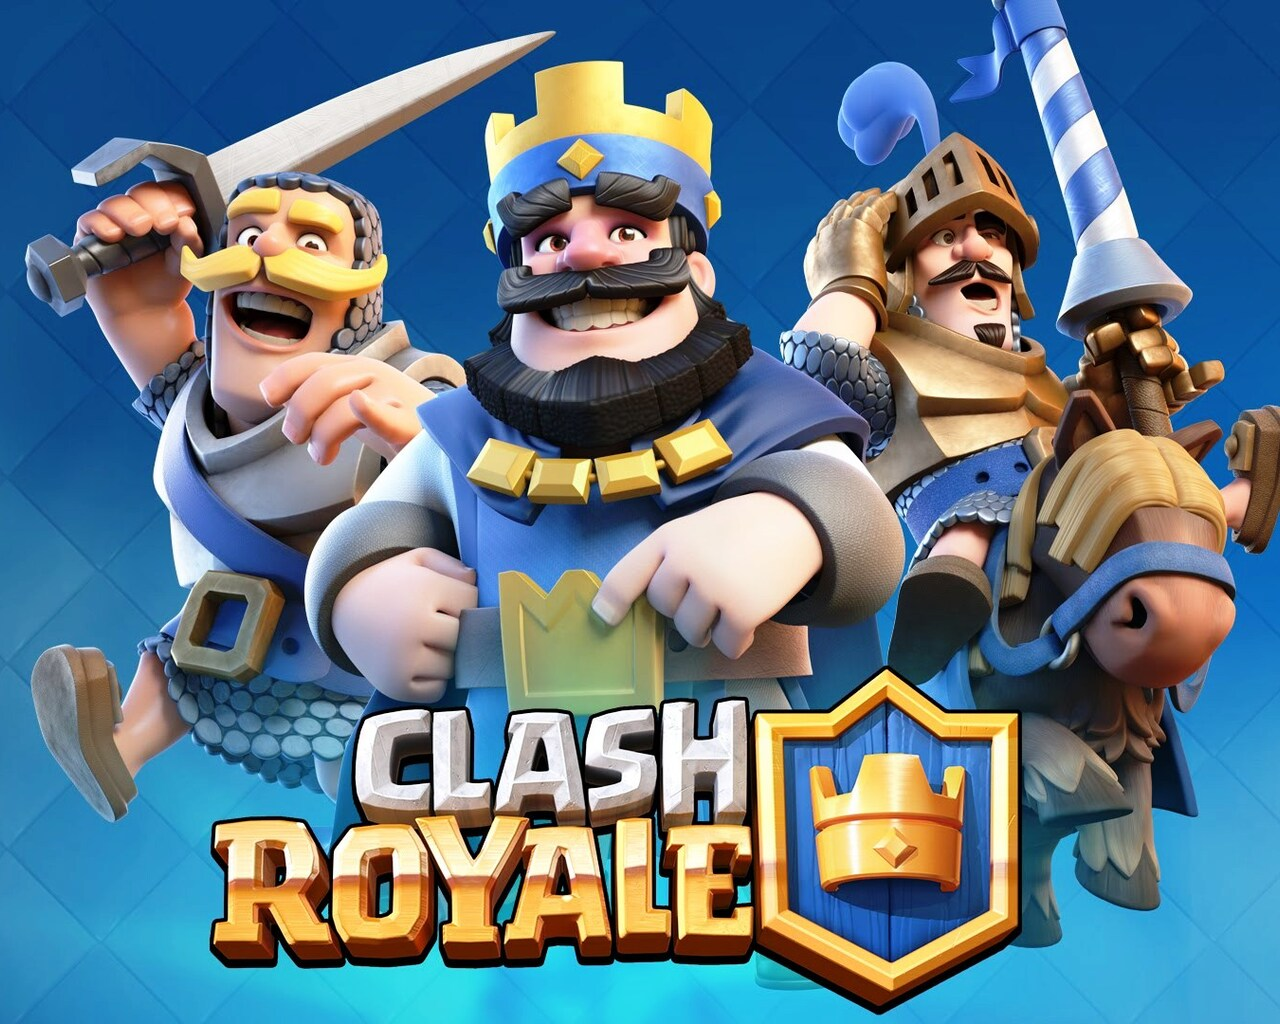 1280x1024 Supercell Clash Royale HD 1280x1024 Resolution ...